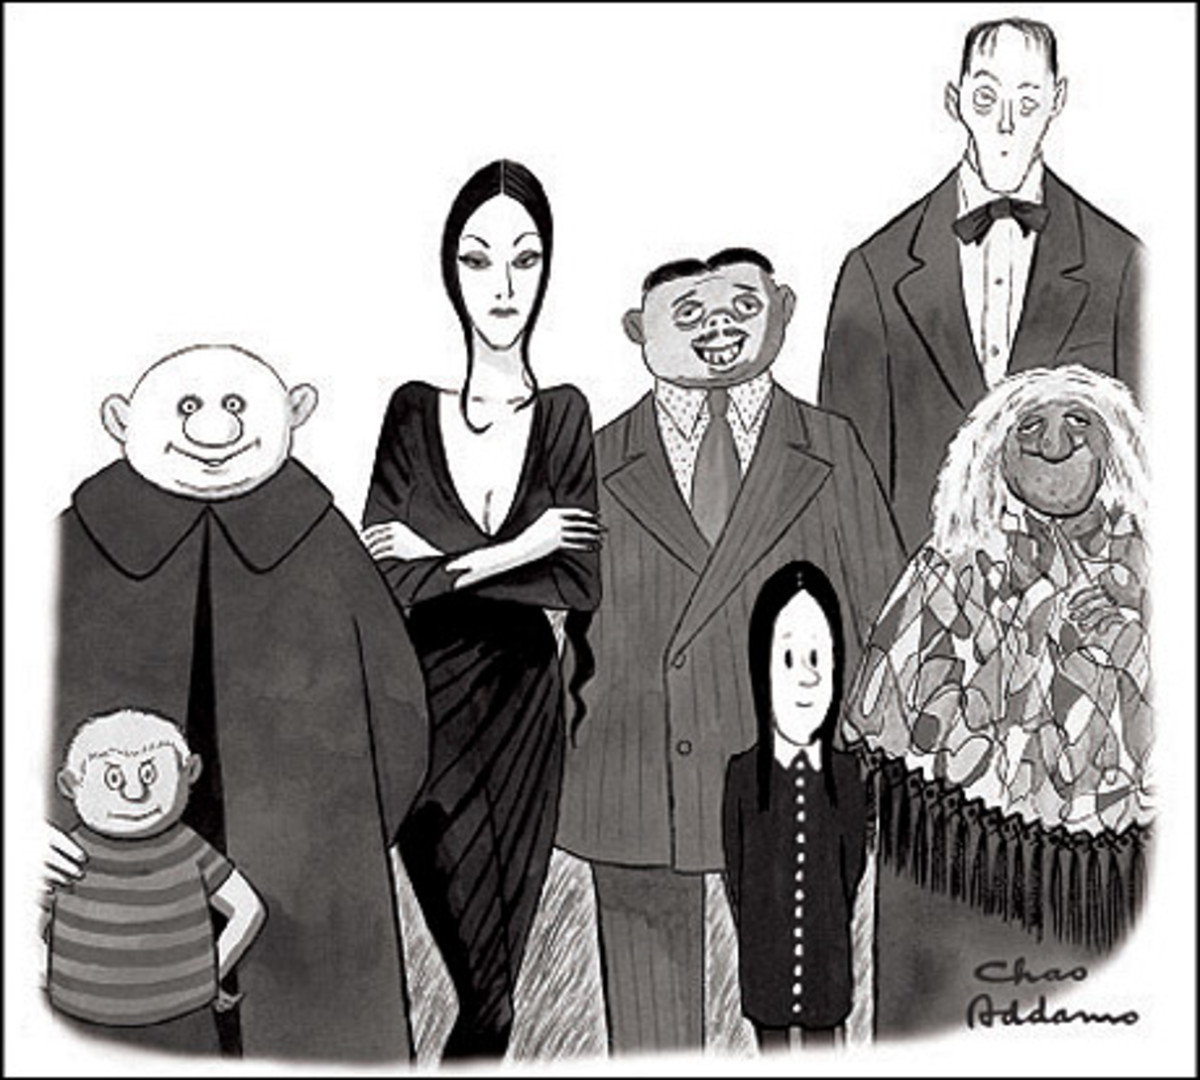 Charles Addams: Humorist of the Macabre